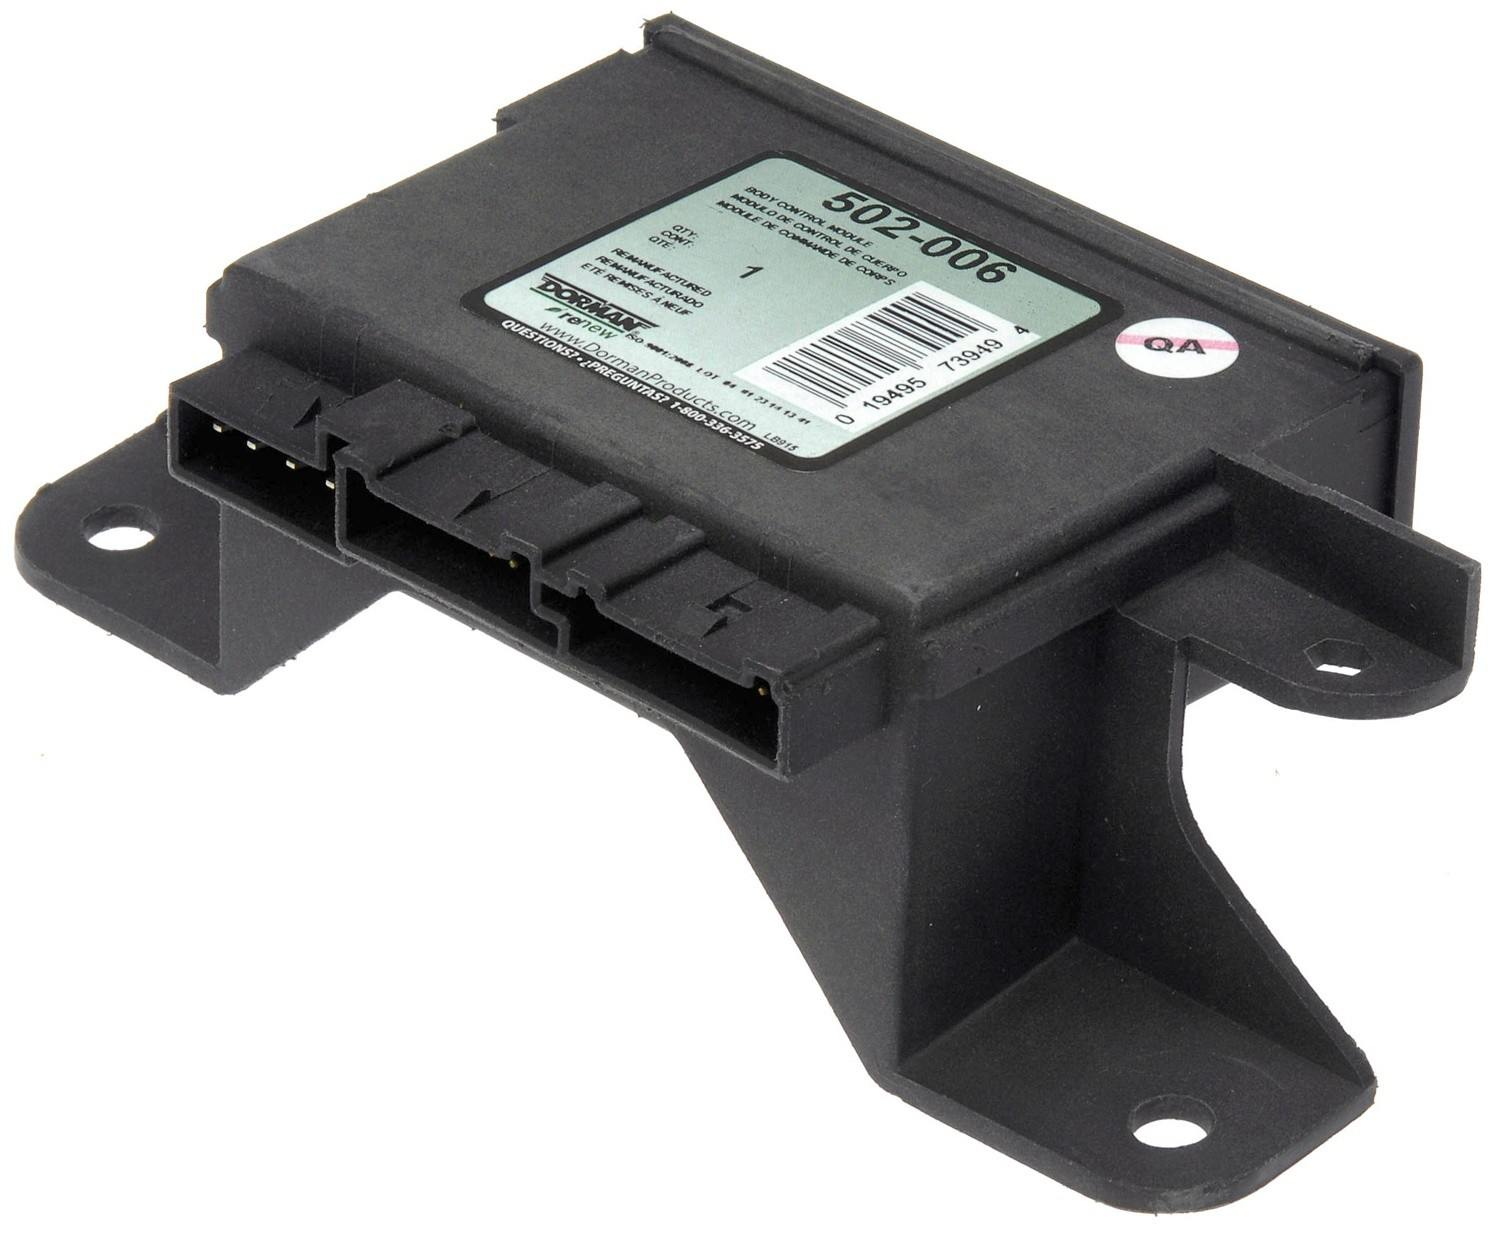 Dorman Oe Solutions Door Window Lock Out Switch Part Number 901 158 Dormanr 923009 Right Tail Light Circuit Board Body Control Module